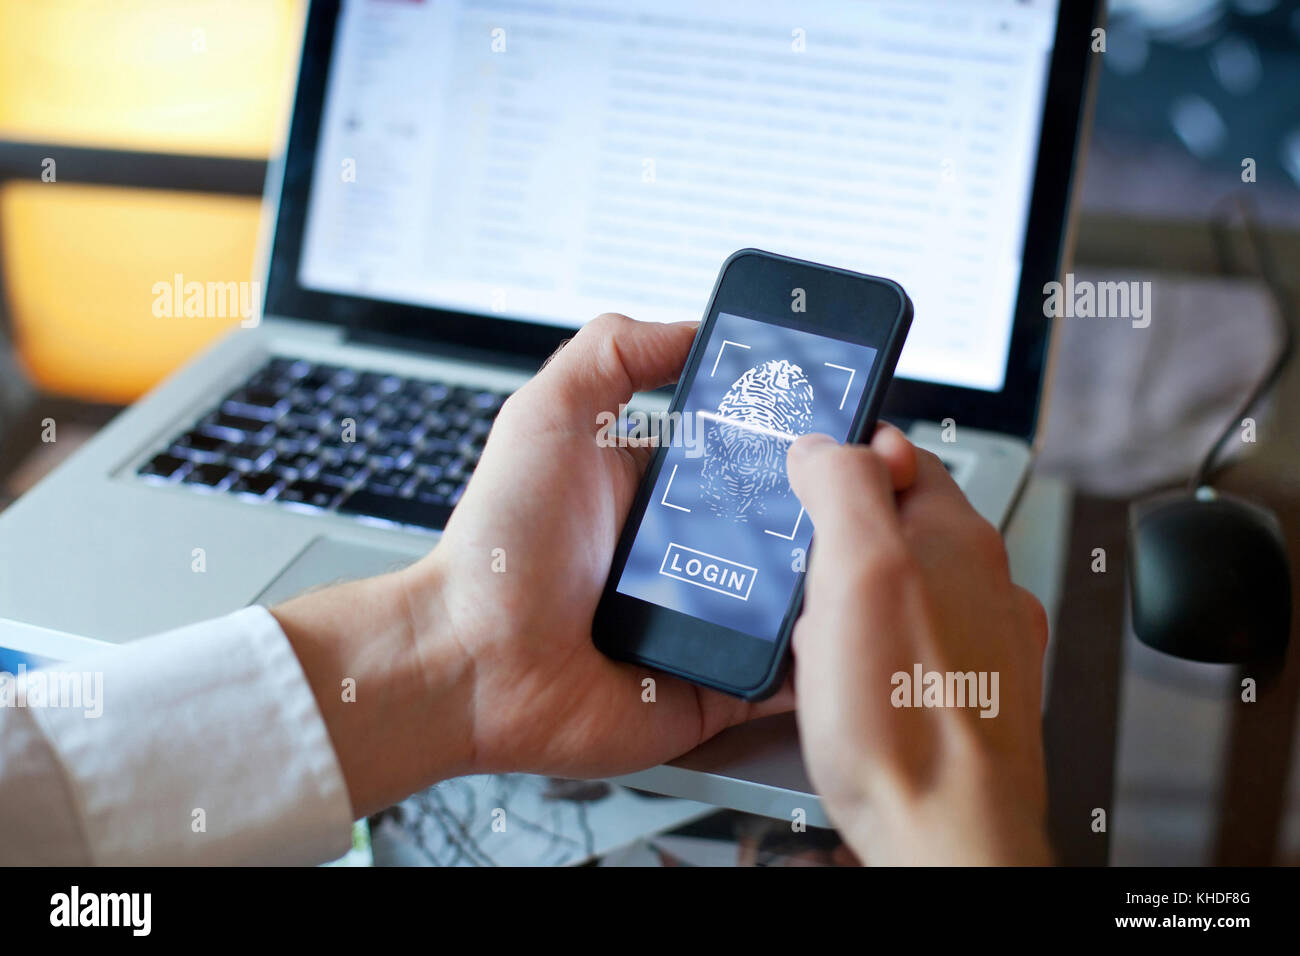 fingerprint login access on smartphone, data security - Stock Image